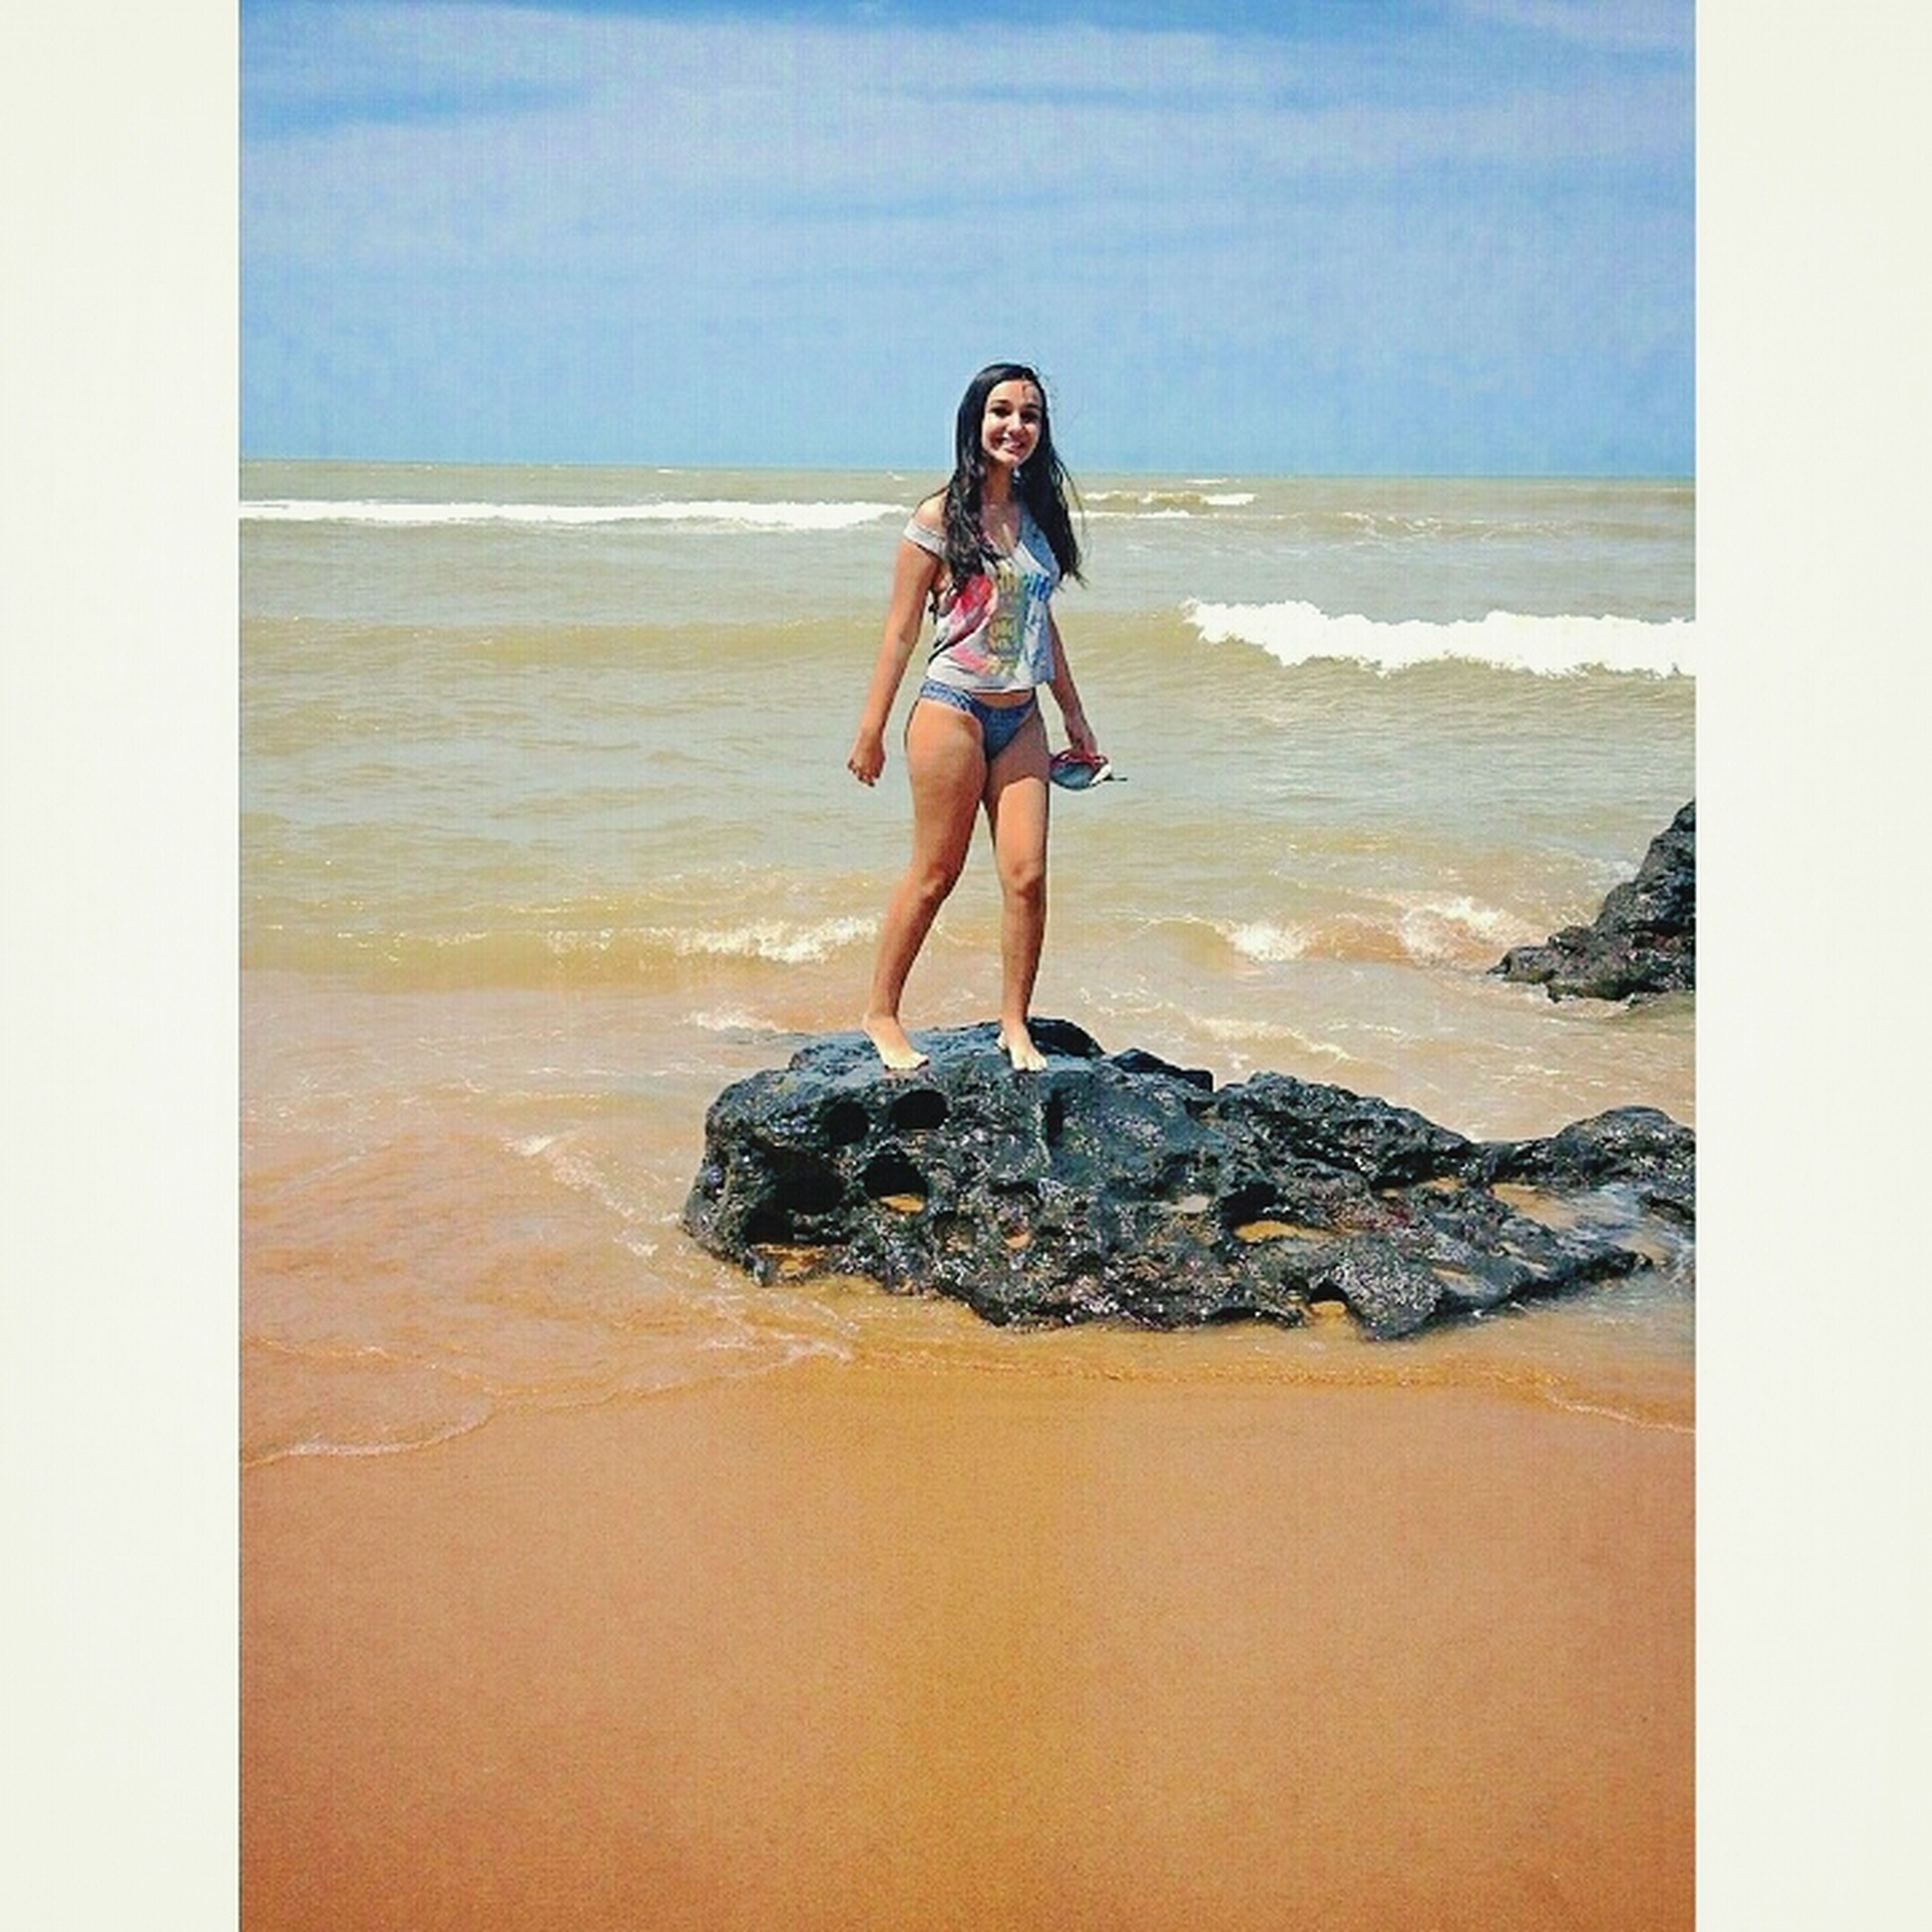 sea, horizon over water, beach, shore, young adult, sky, lifestyles, water, leisure activity, full length, sand, transfer print, person, auto post production filter, scenics, vacations, standing, young women